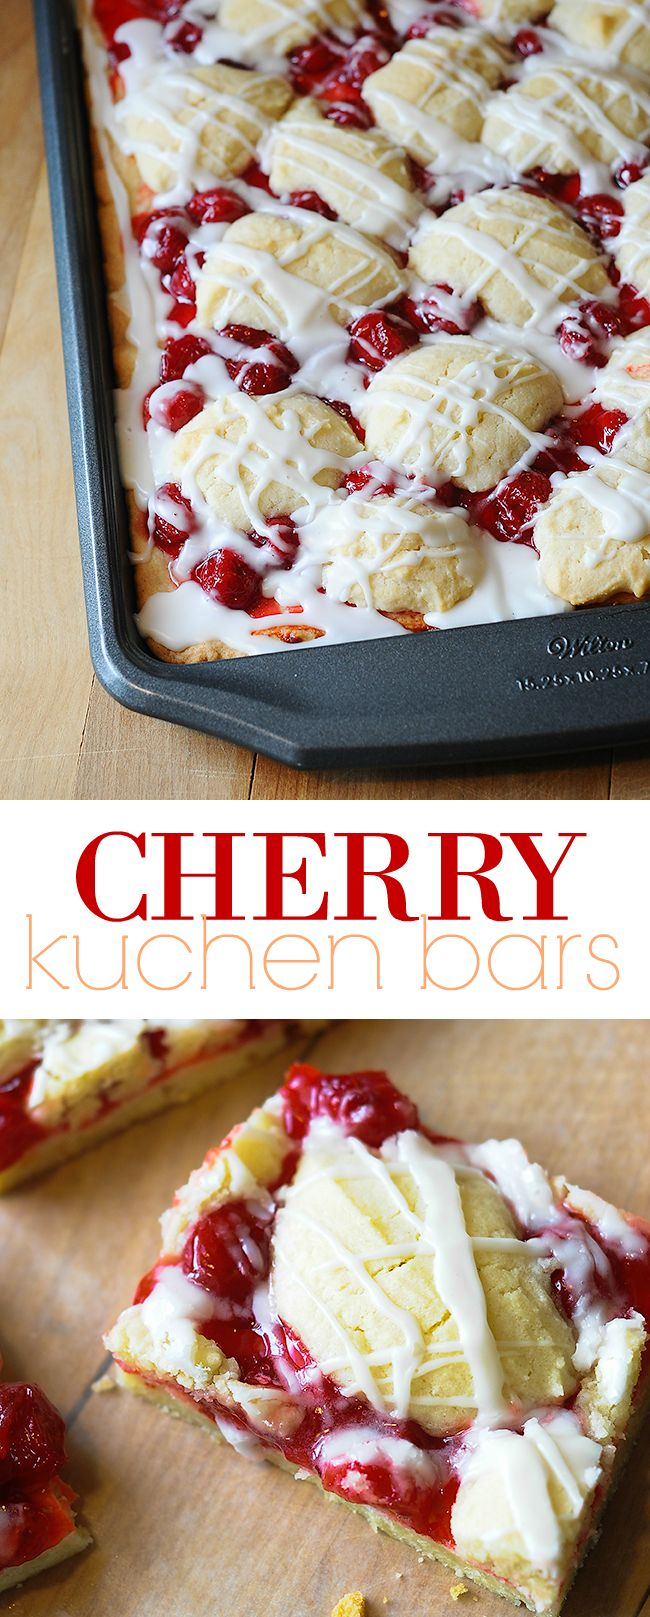 Cherry Kuchen Bars - These delicious cherry kuchen bars (sometimes called cherry pie bars) have a flaky crust, are perfectly sweet and completely delicious! This is one of the top 5 dessert recipes of all time on my blog!